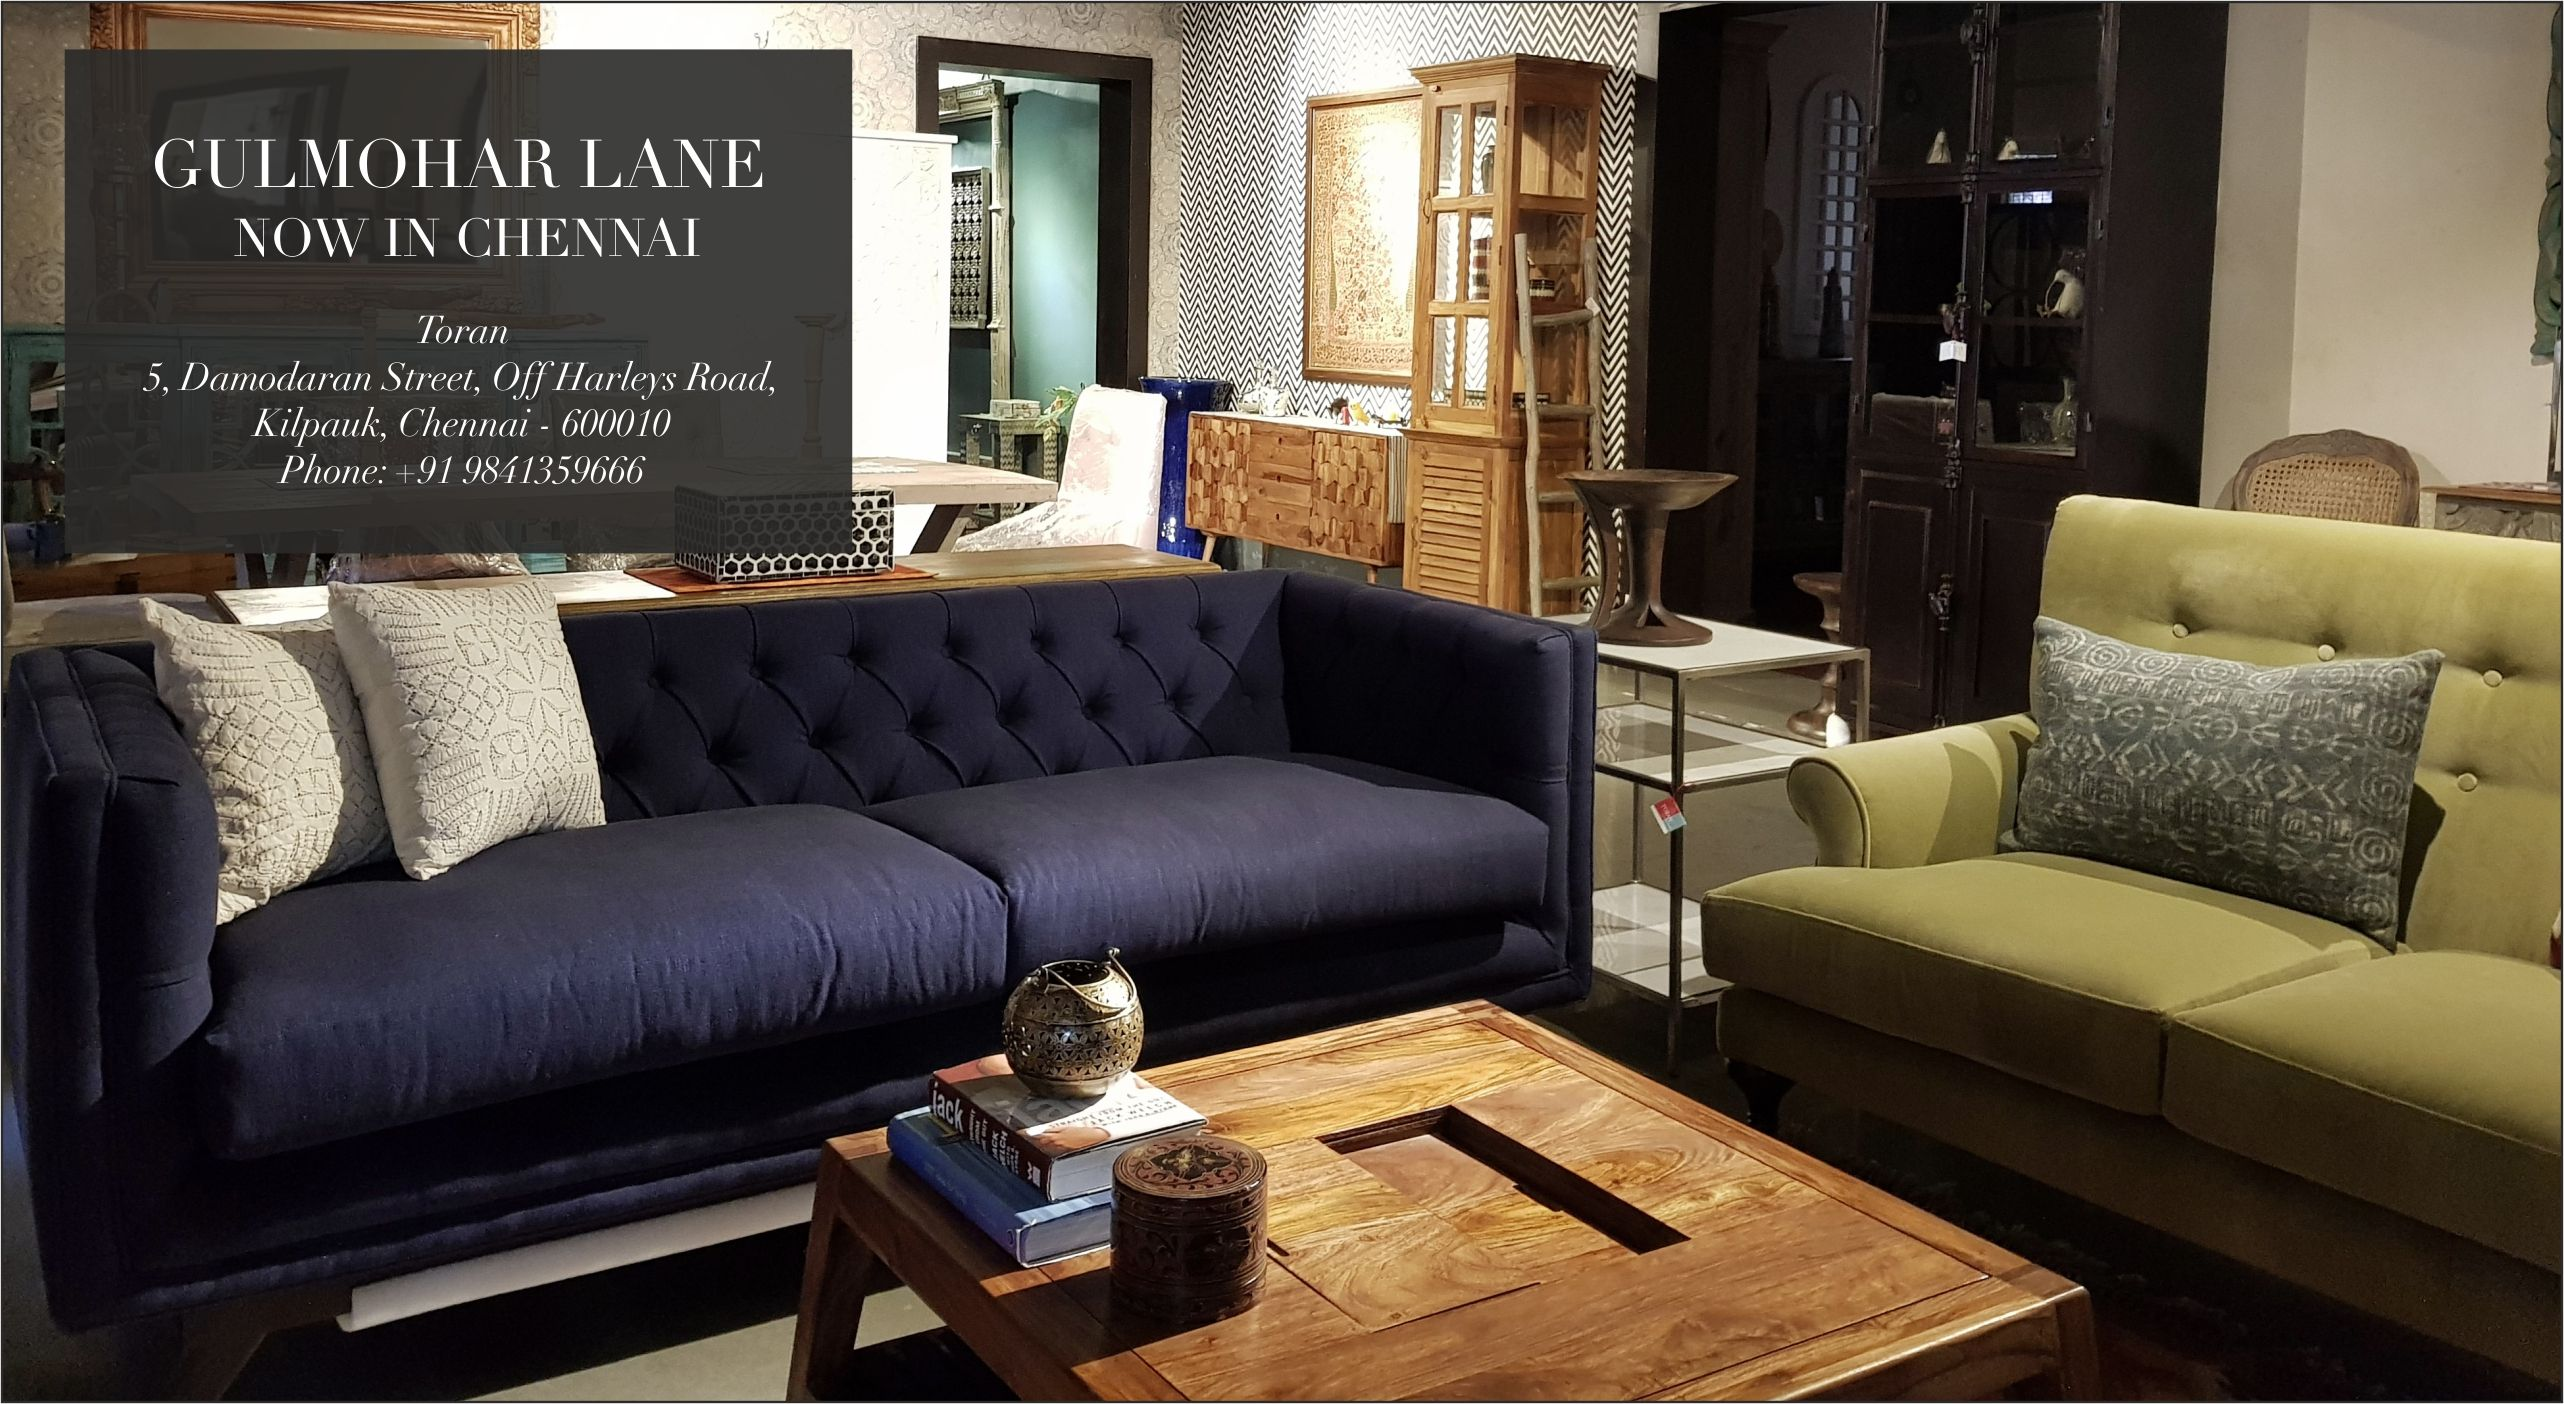 What A Better Start To Gulmohar Lane S 4th Year Than Bringing Our Products Closer To You We Are Excited To Announce That Ou Purchase Furniture Furniture Home